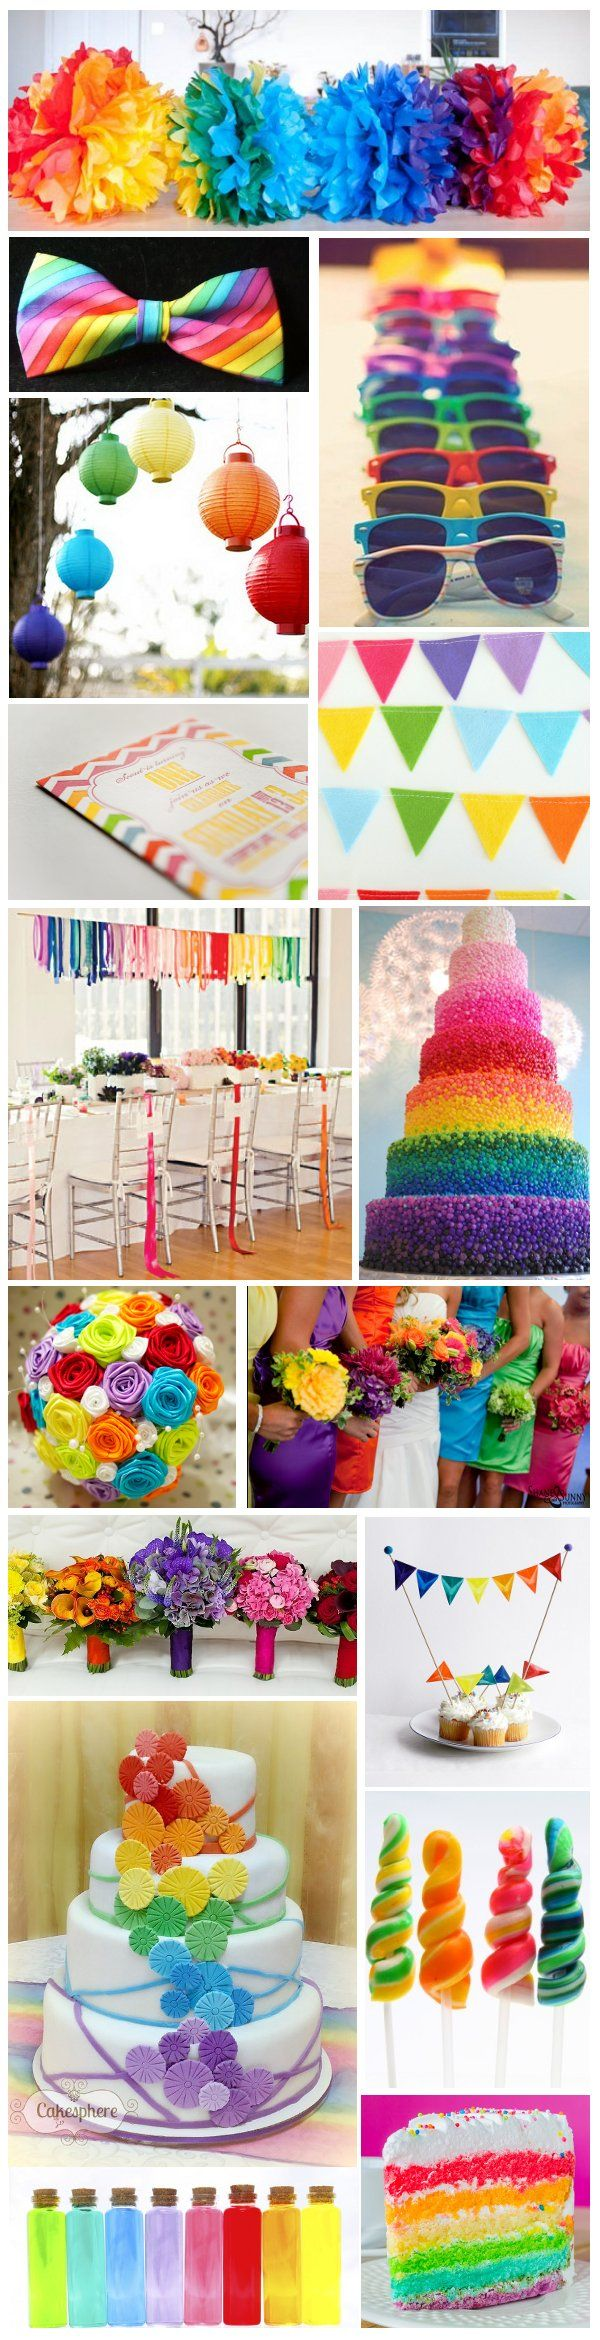 48 Best Mely Images On Pinterest Weddings Multicolor Wedding And